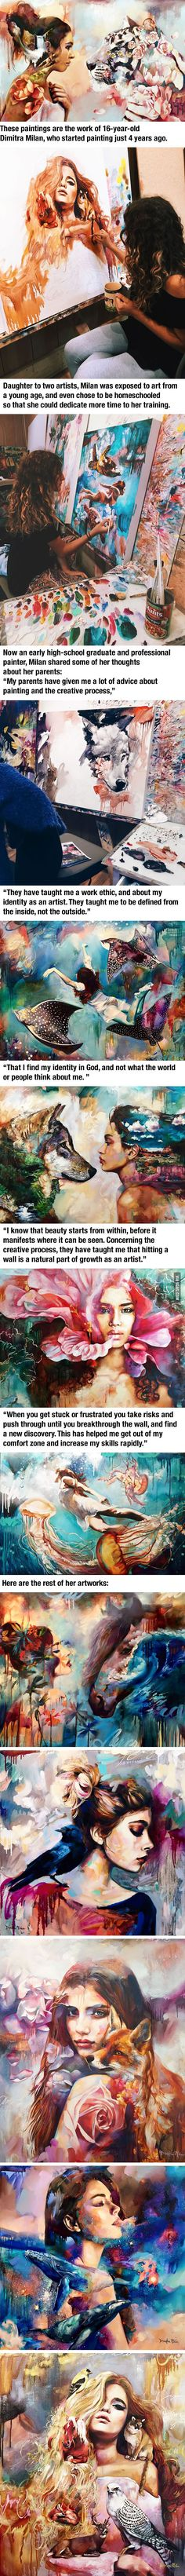 Talented 16-Year-Old Artist Turns Her Wildest Dreams Into Paintings (by Dimitra Milan) - 9GAG